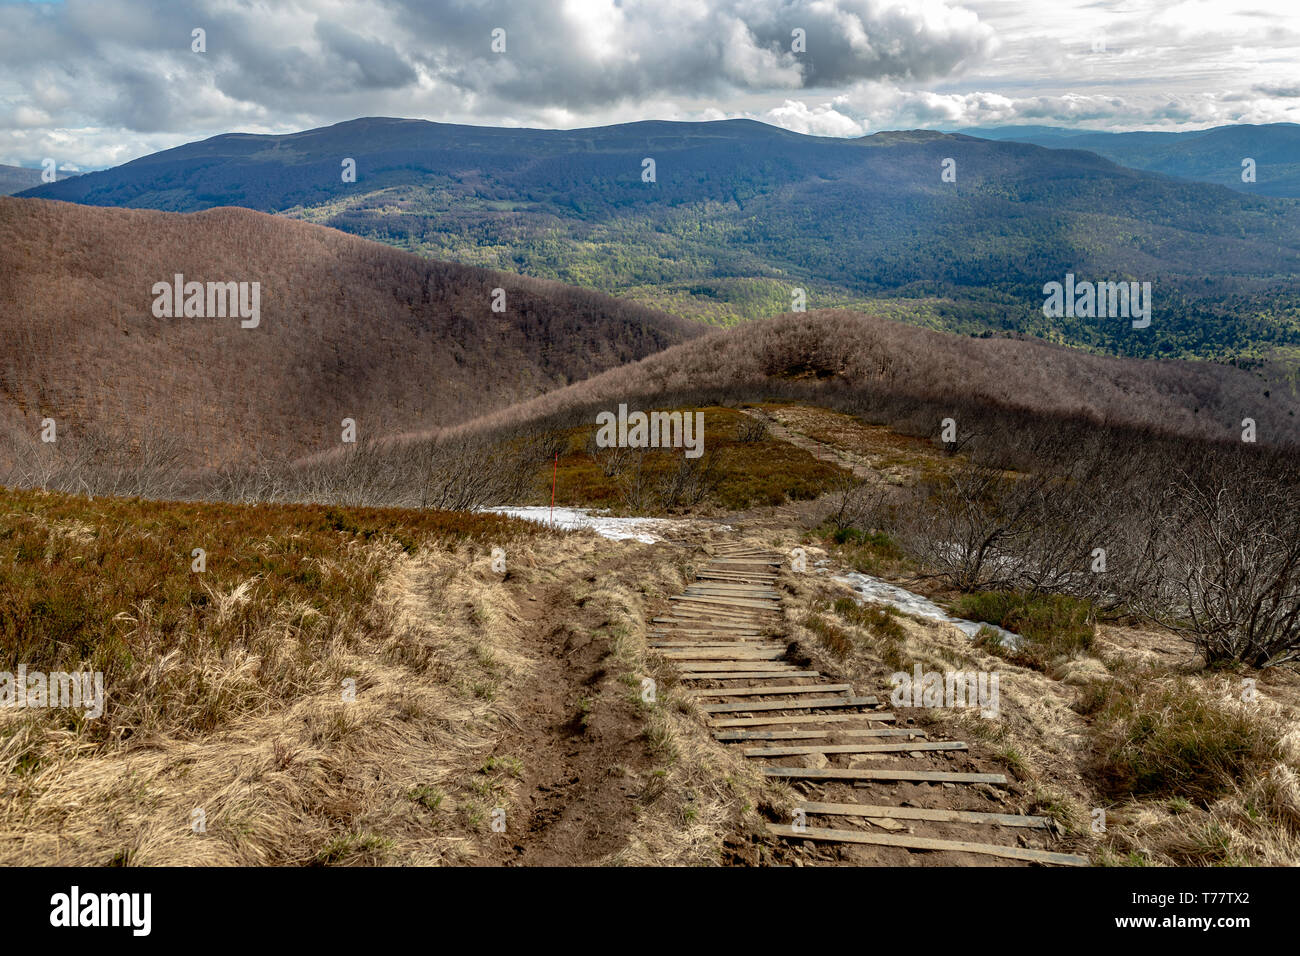 Empty trail in the mountains of central europe. A path leading high in the mountains. spring time. - Stock Image